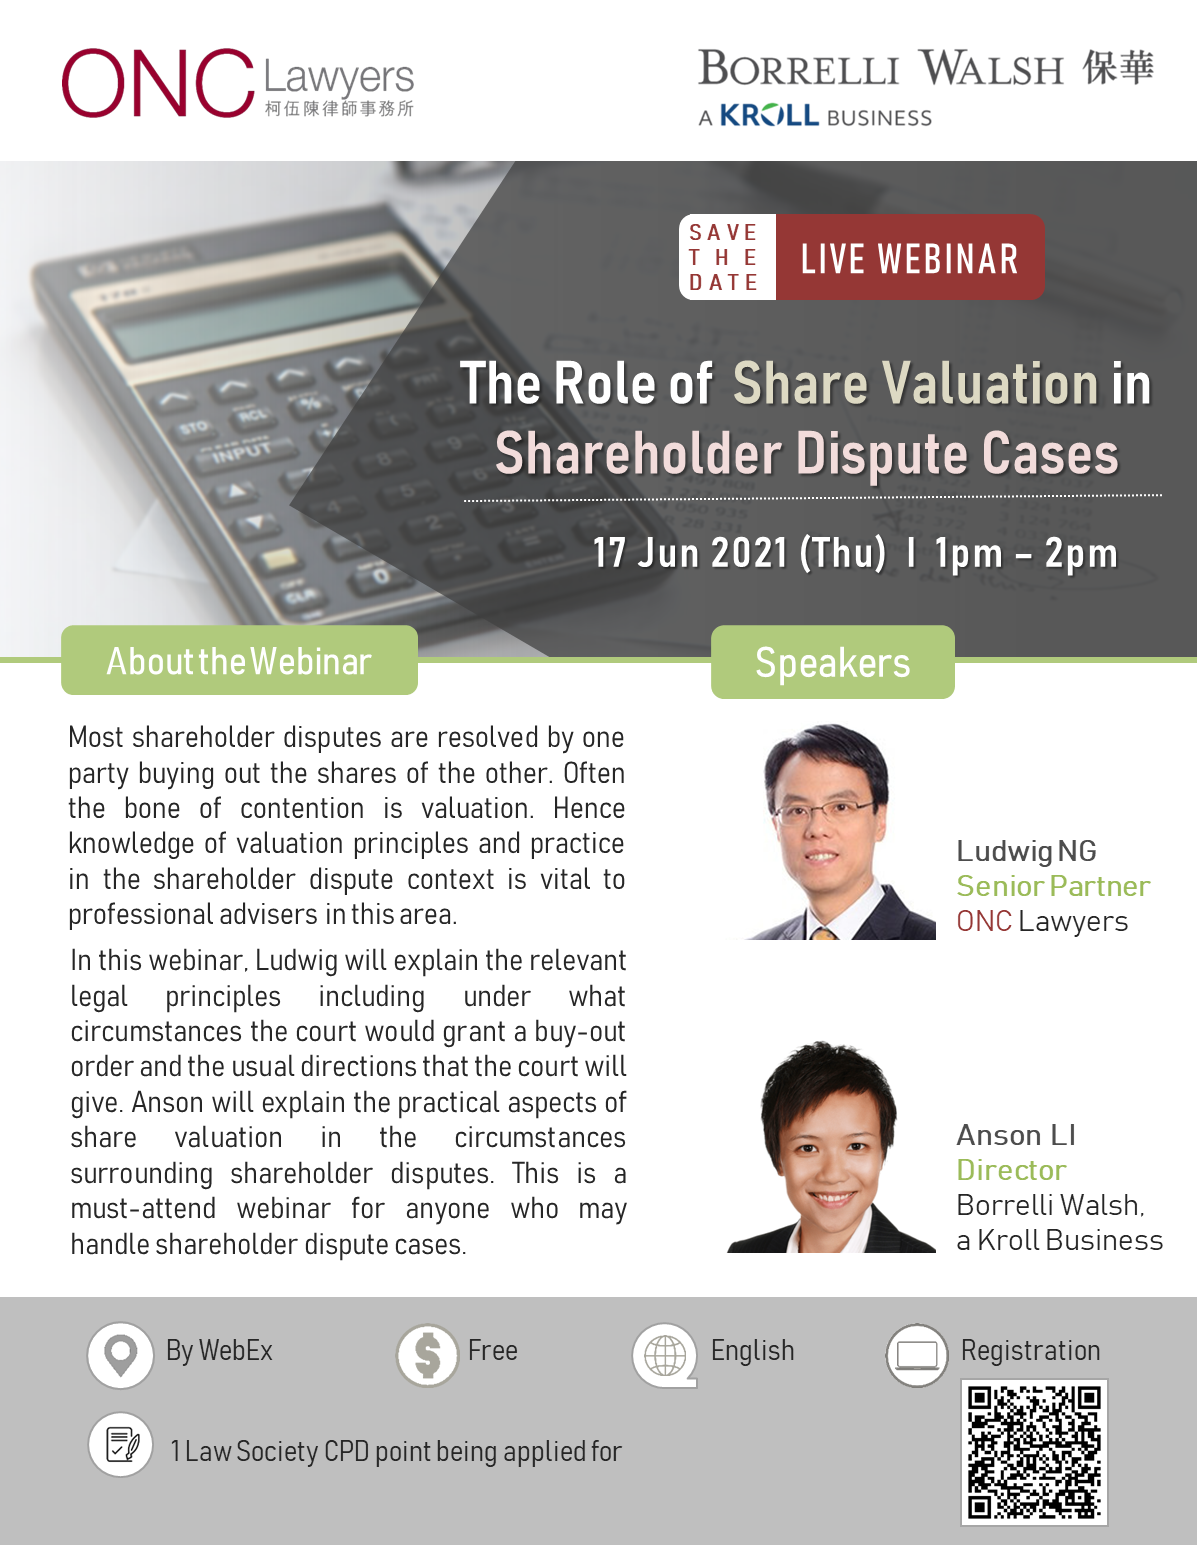 Webinar on The Role of Share Valuation in Shareholder Dispute Cases